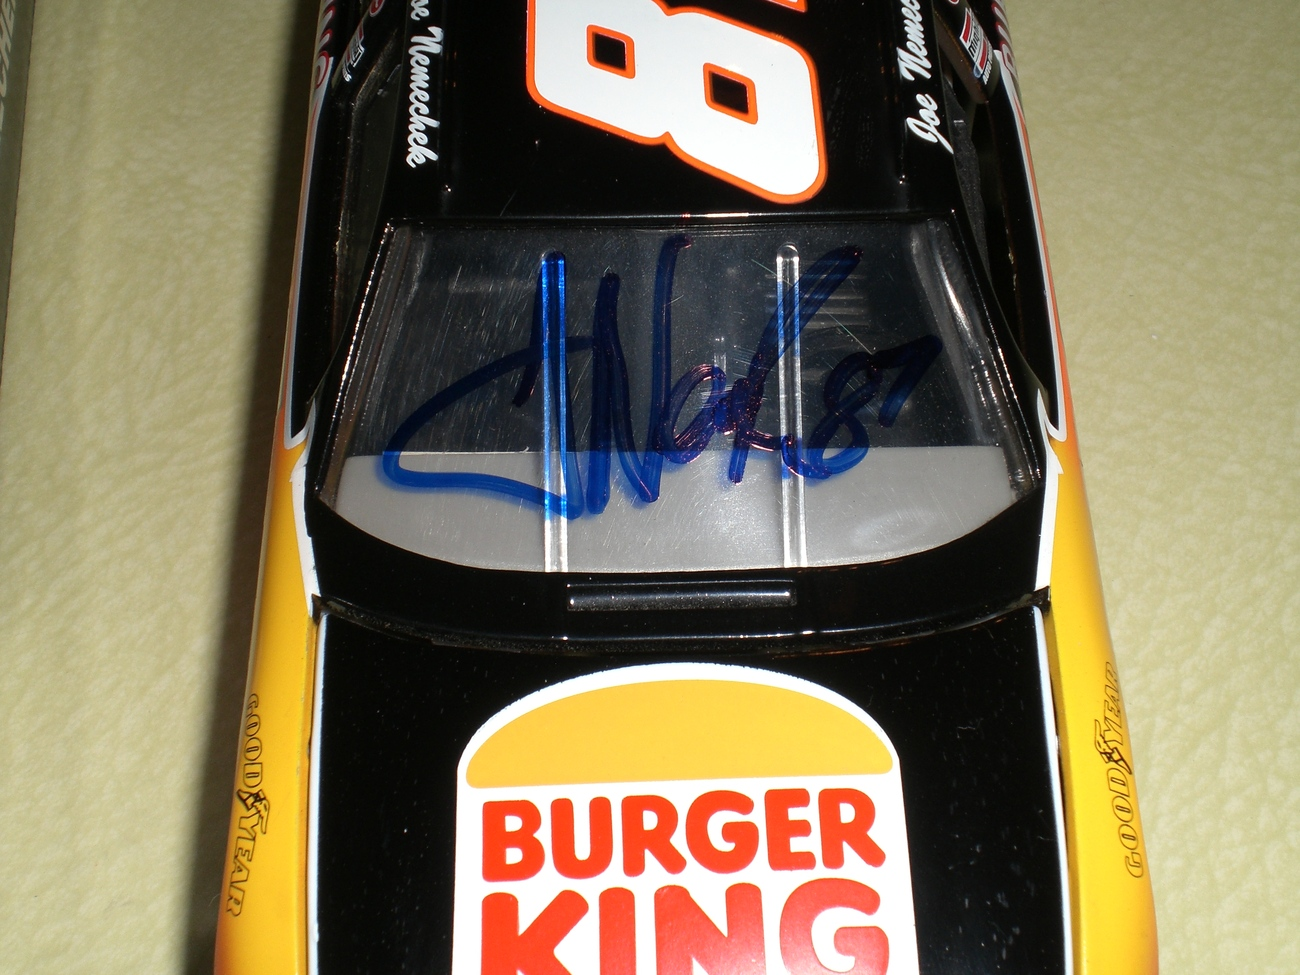 Joe Nemechek SIGNED Nascar 1/24 Burger King diecast car RARE image 3